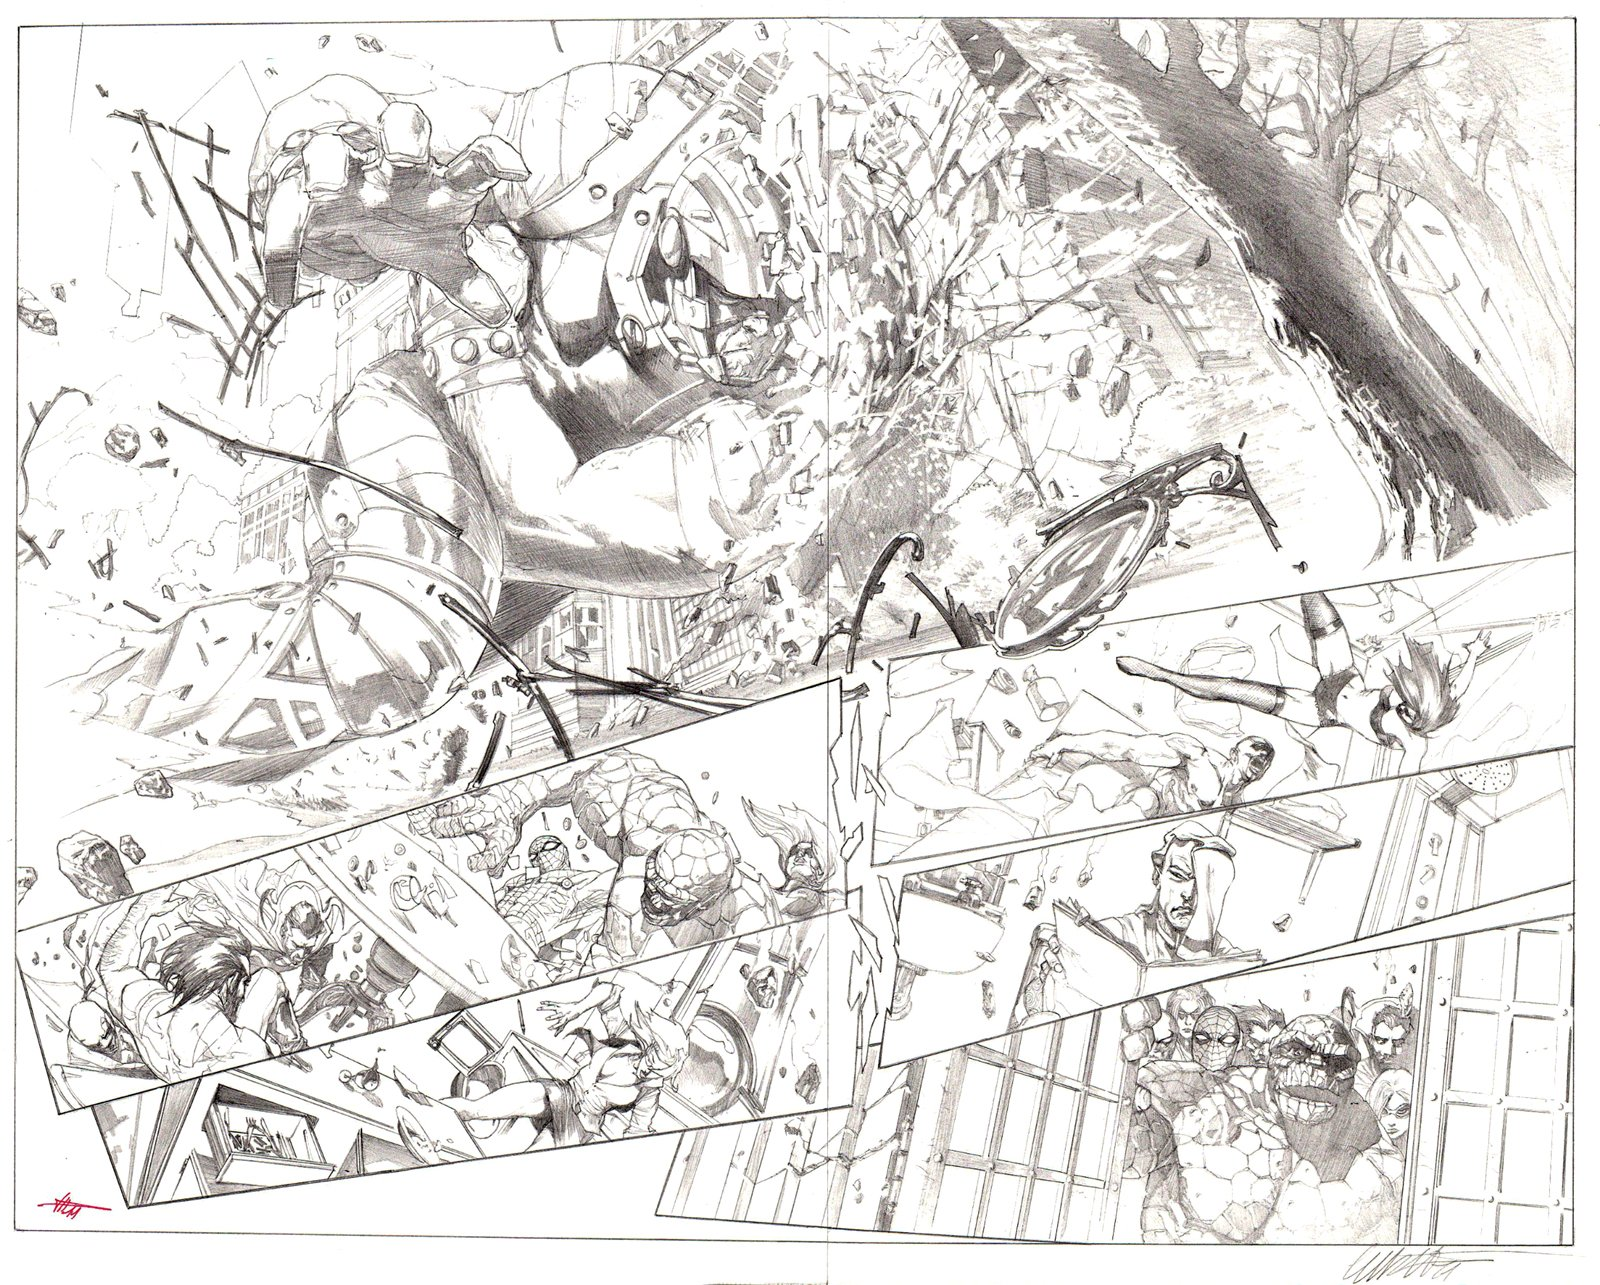 New Avengers Annual #1 p 18-19 Double Page Spread (!) 2011